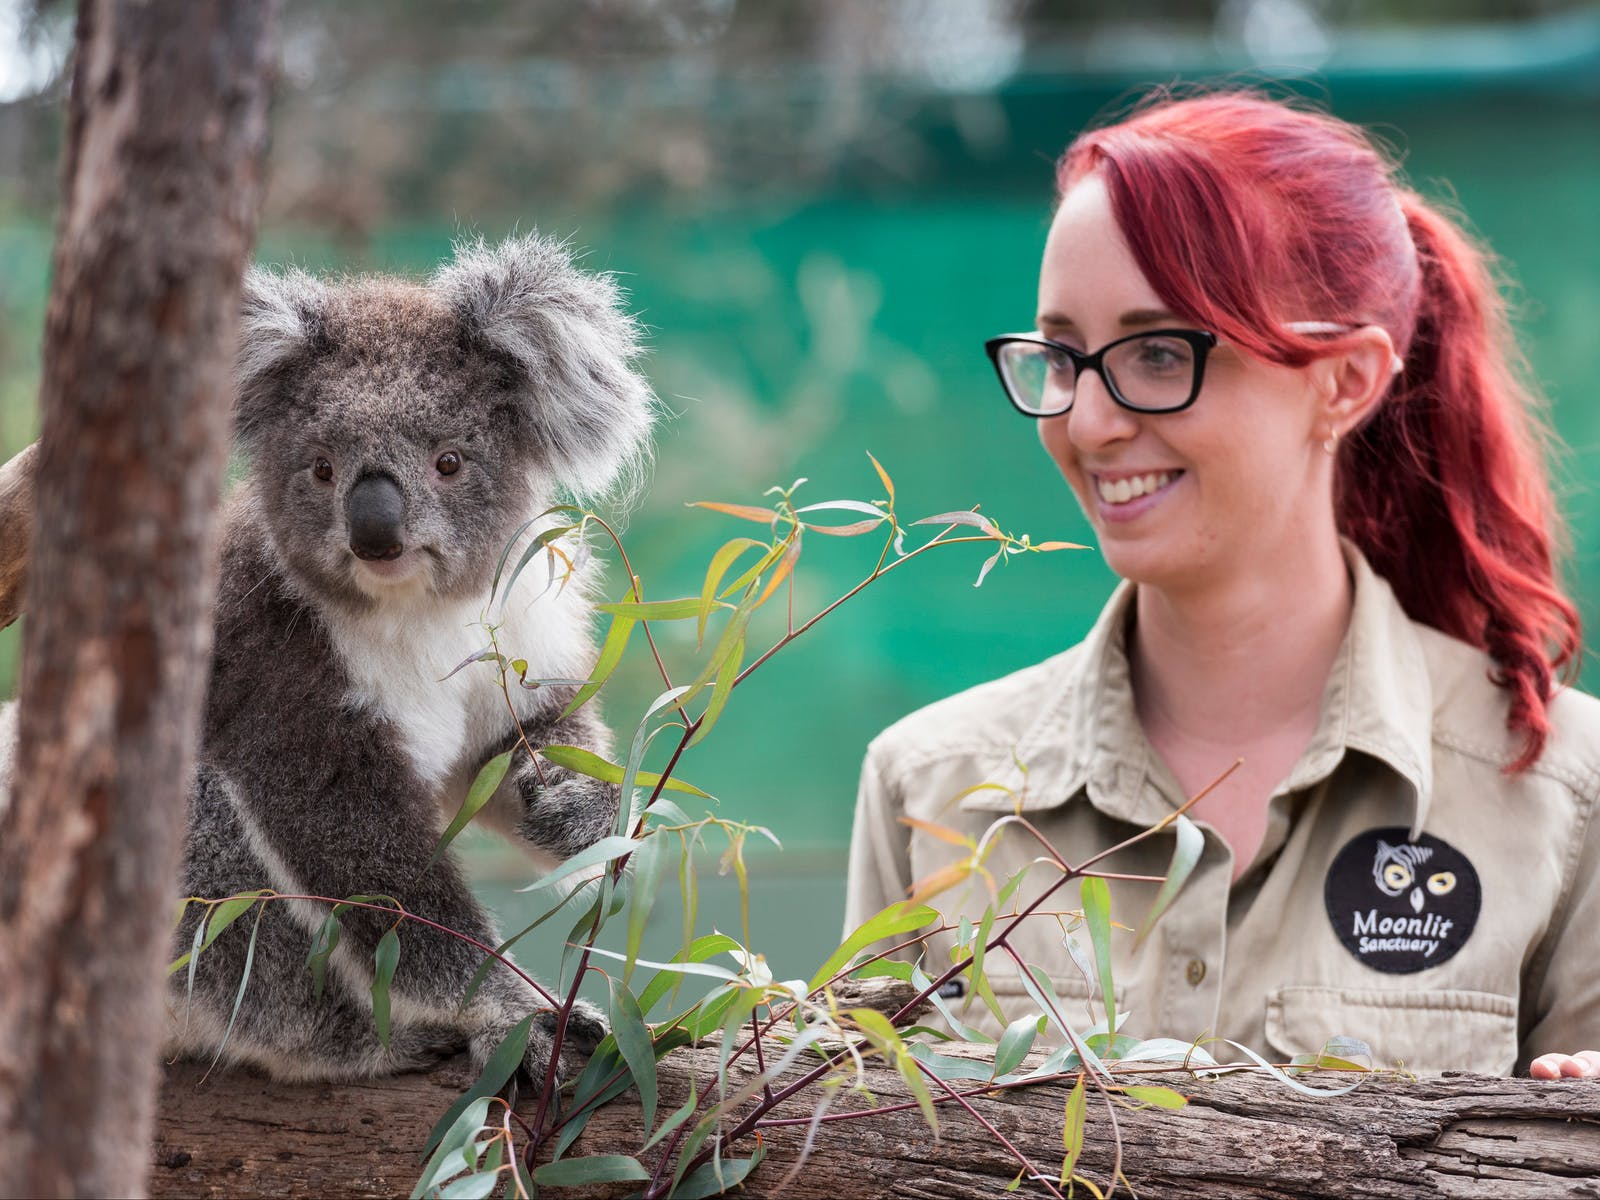 Close encounters with the Australian Koala at Moonlit Sanctuary, Mornington Peninsula